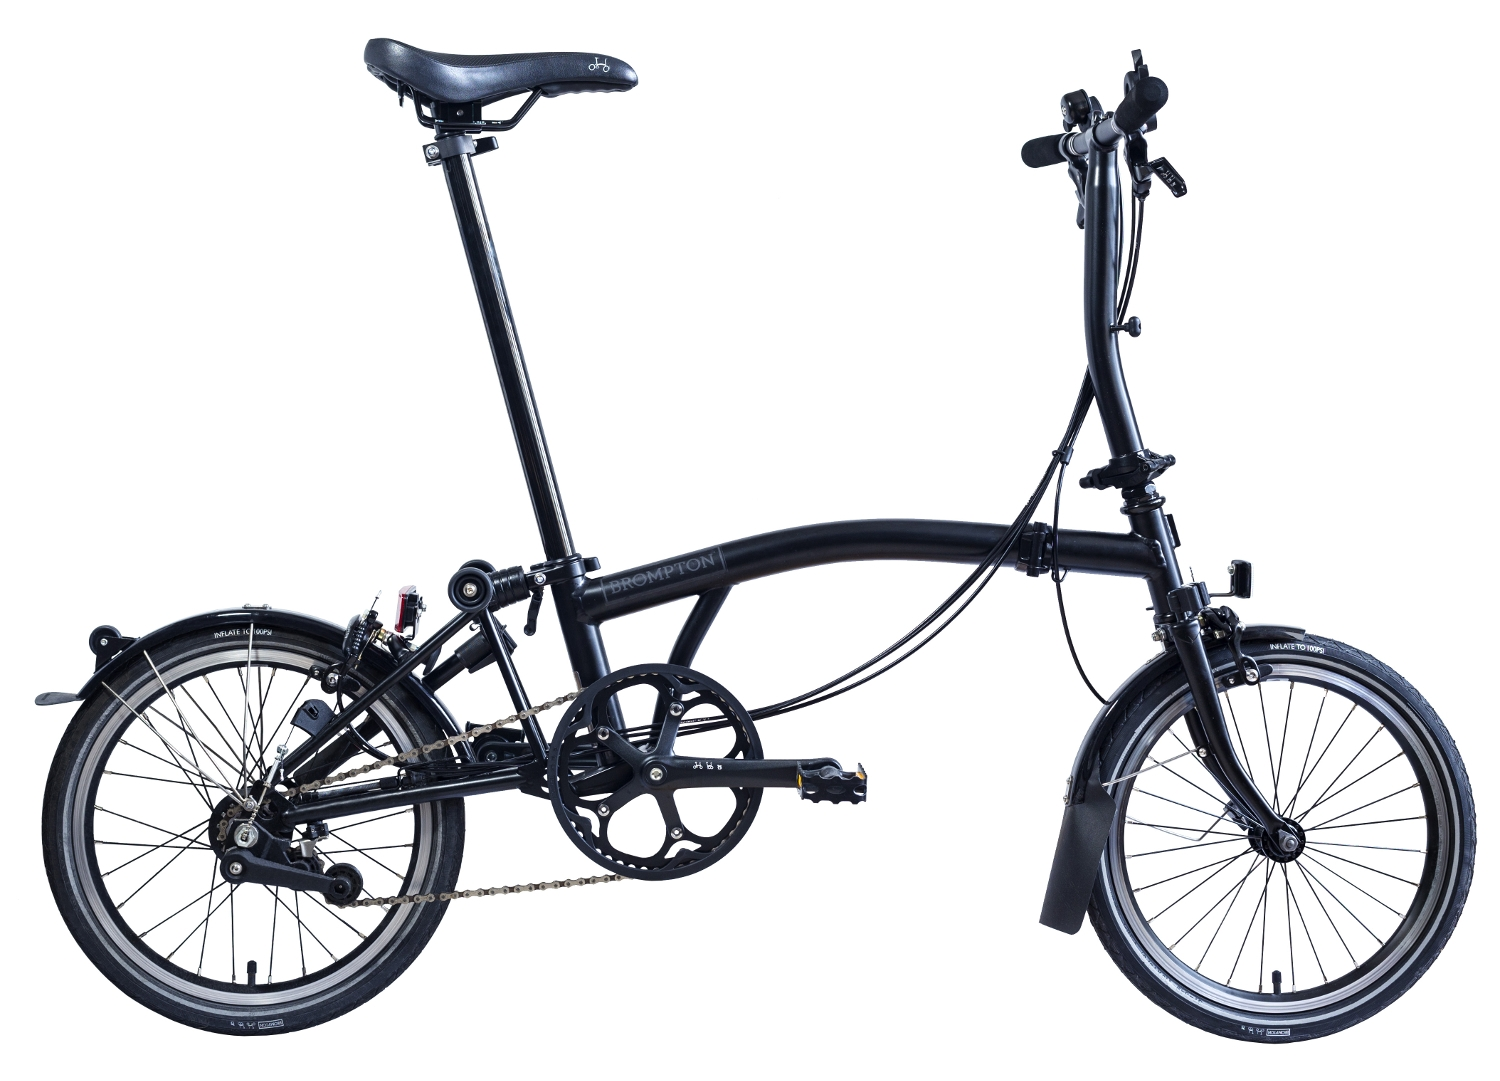 Seat Pillar Standard or Extended Length Brompton Black Edition Seatpost